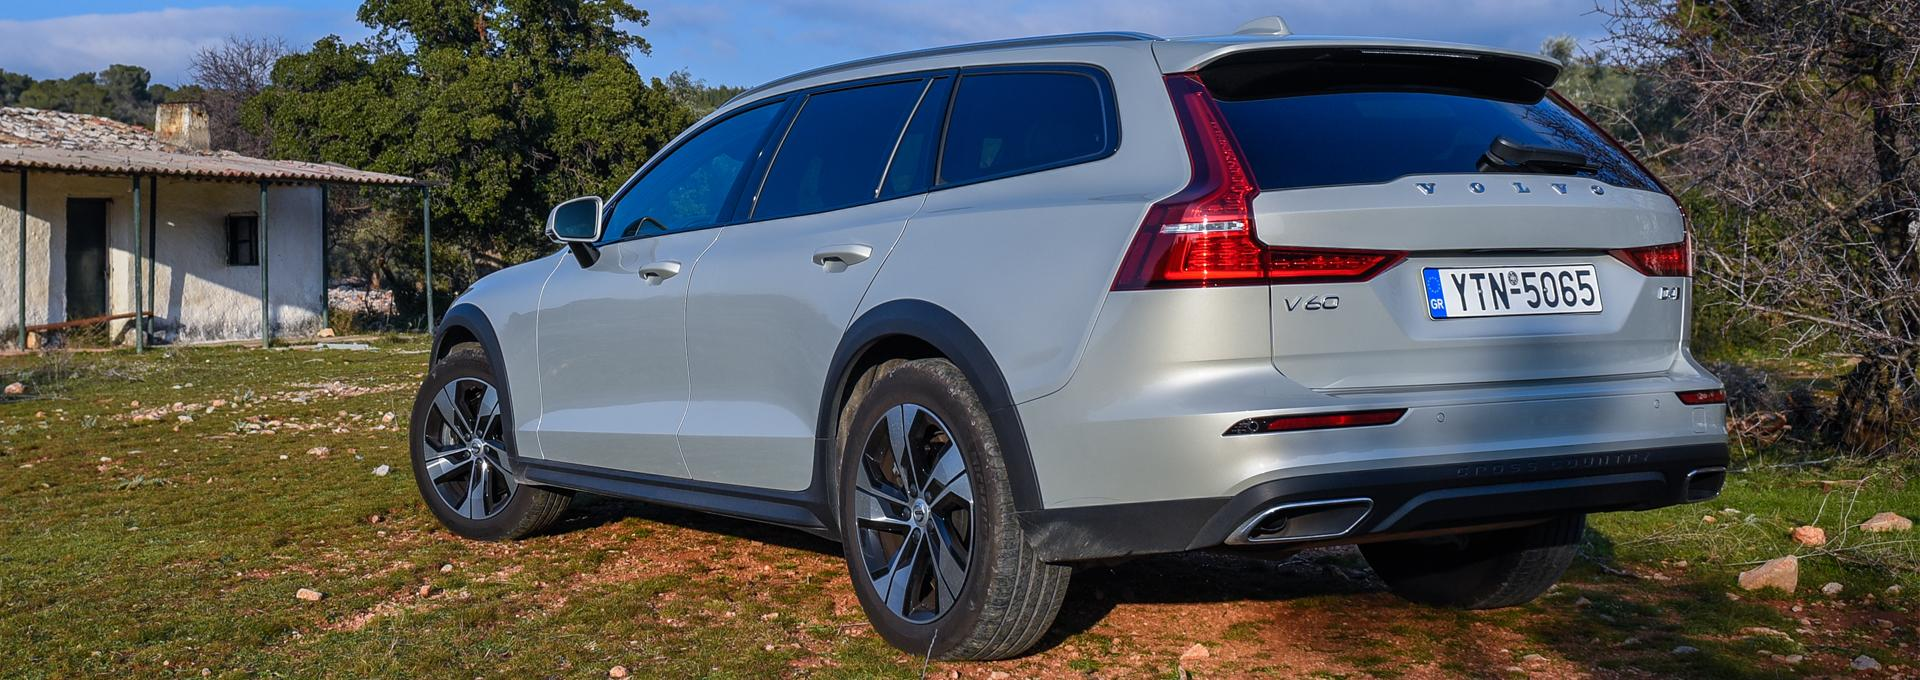 Volvo V60 Cross Country D4 190Ps